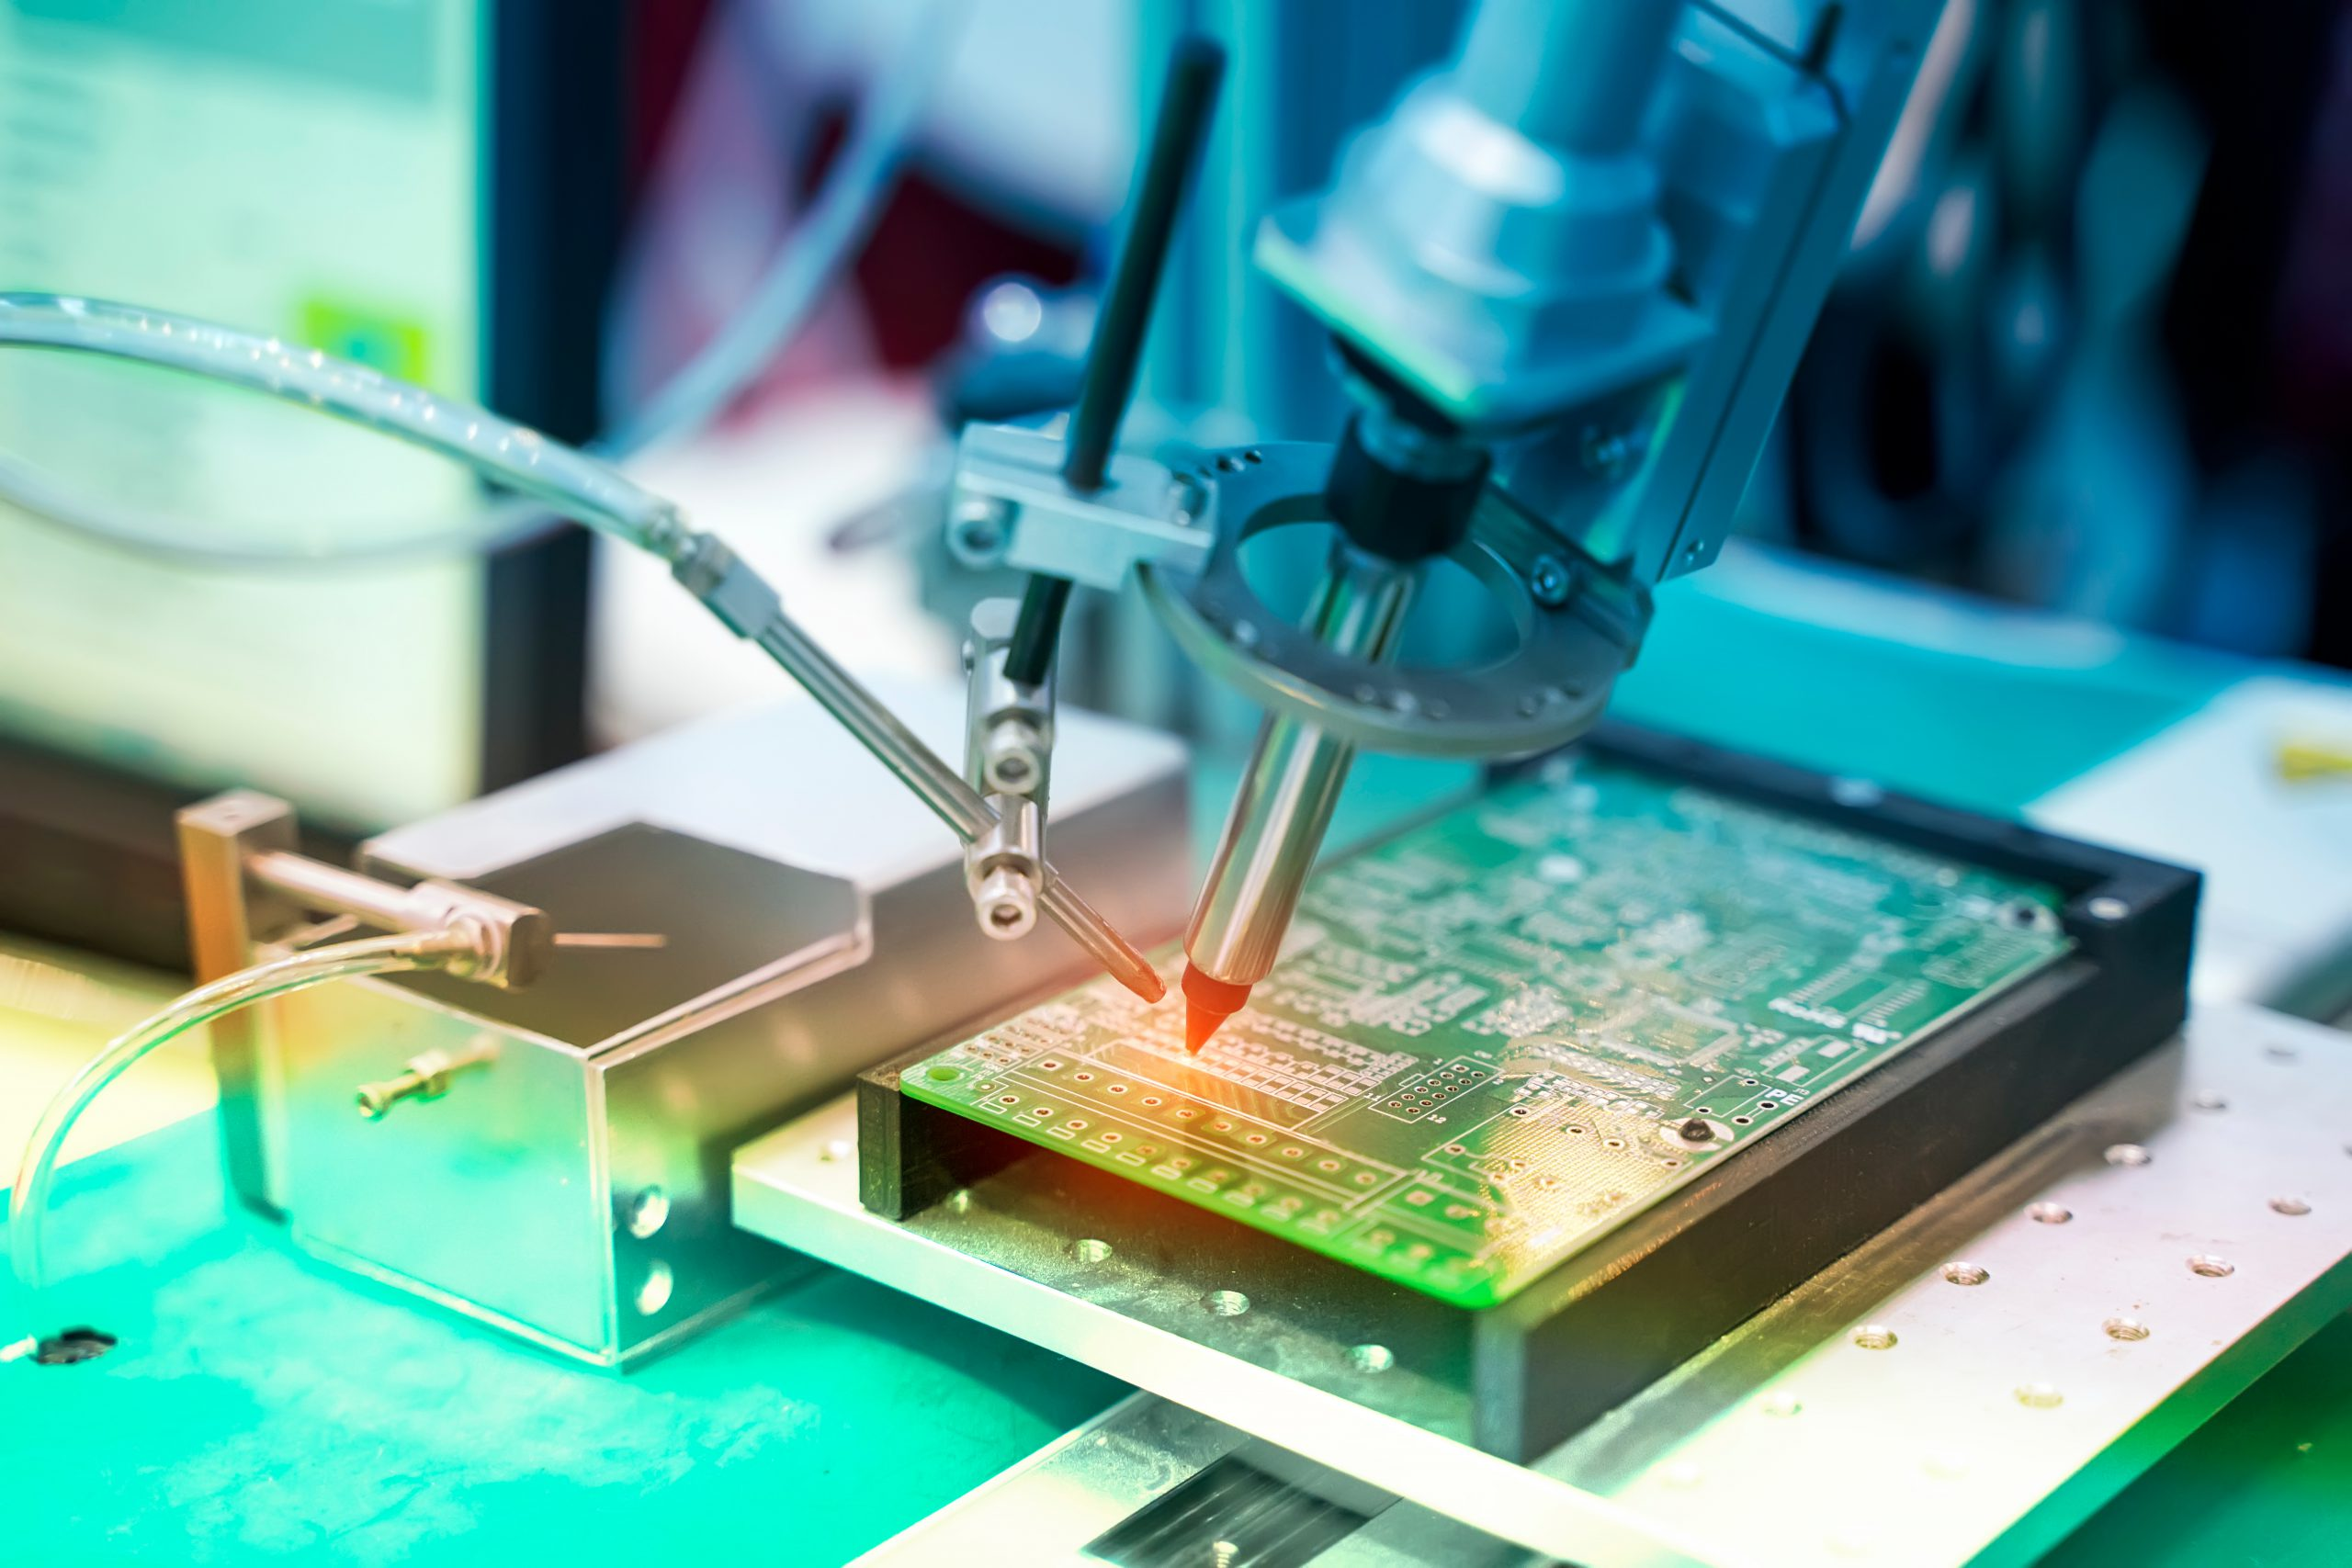 Removal of conformal coating by soldering